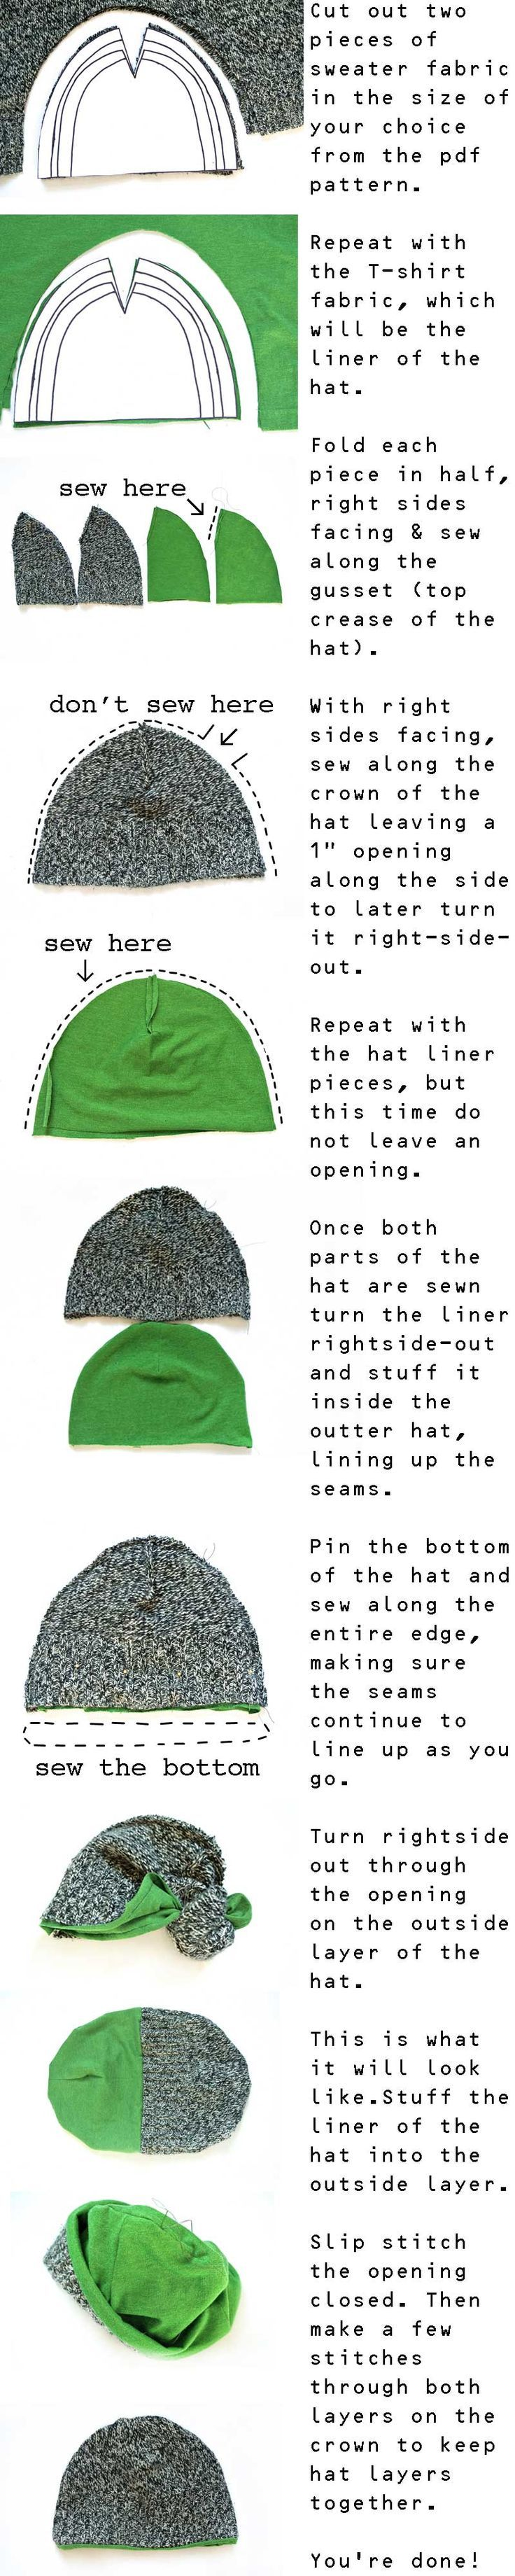 Here is a very simple tutorial to make cute hats from repurposed ...